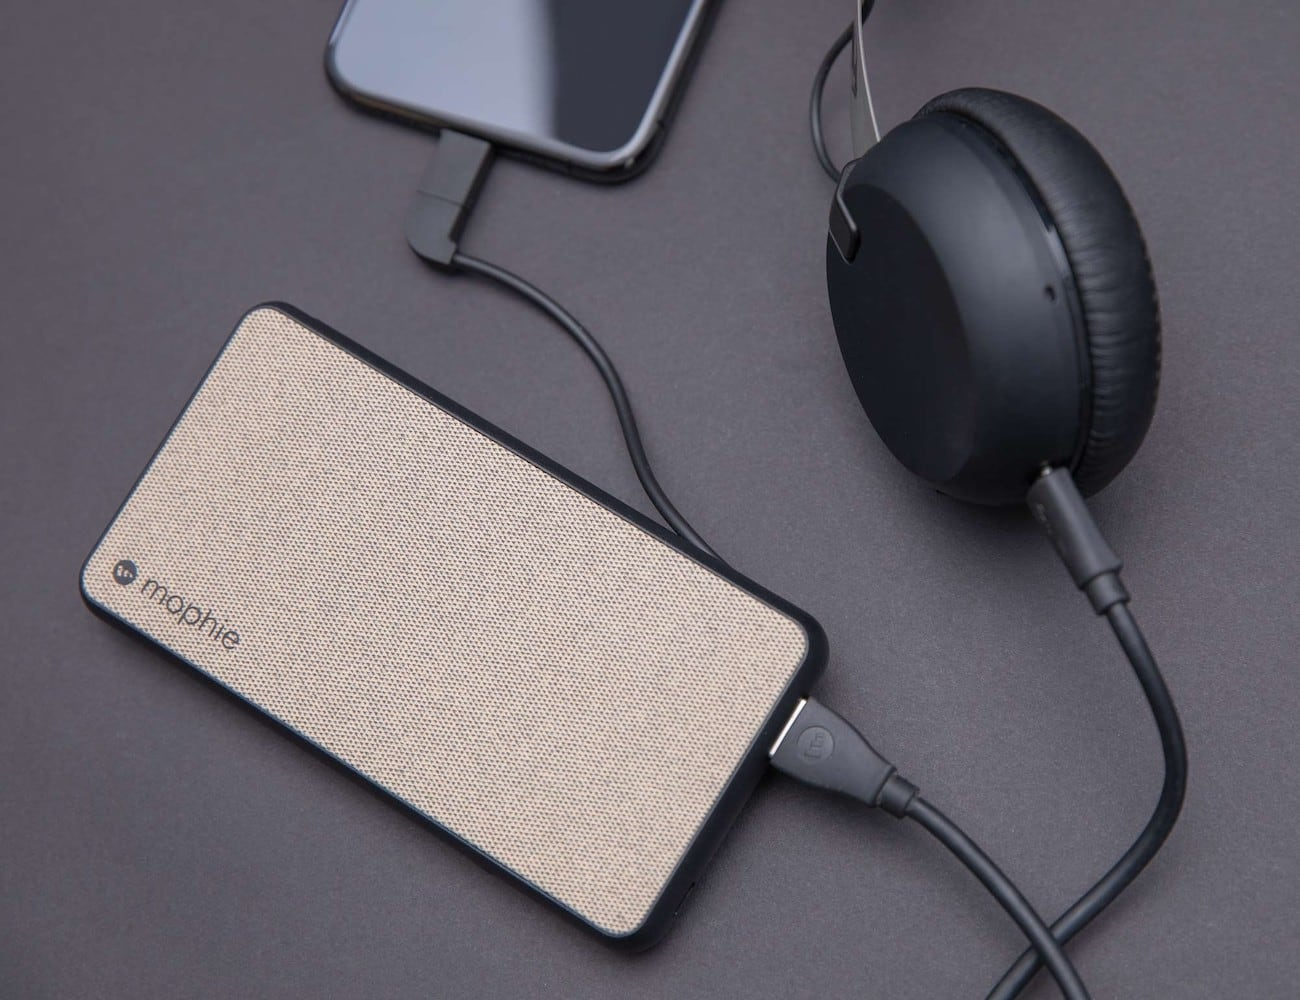 mophie powerstation plus XL Fabric Power Bank has a 10,000 mAh on-the-go battery